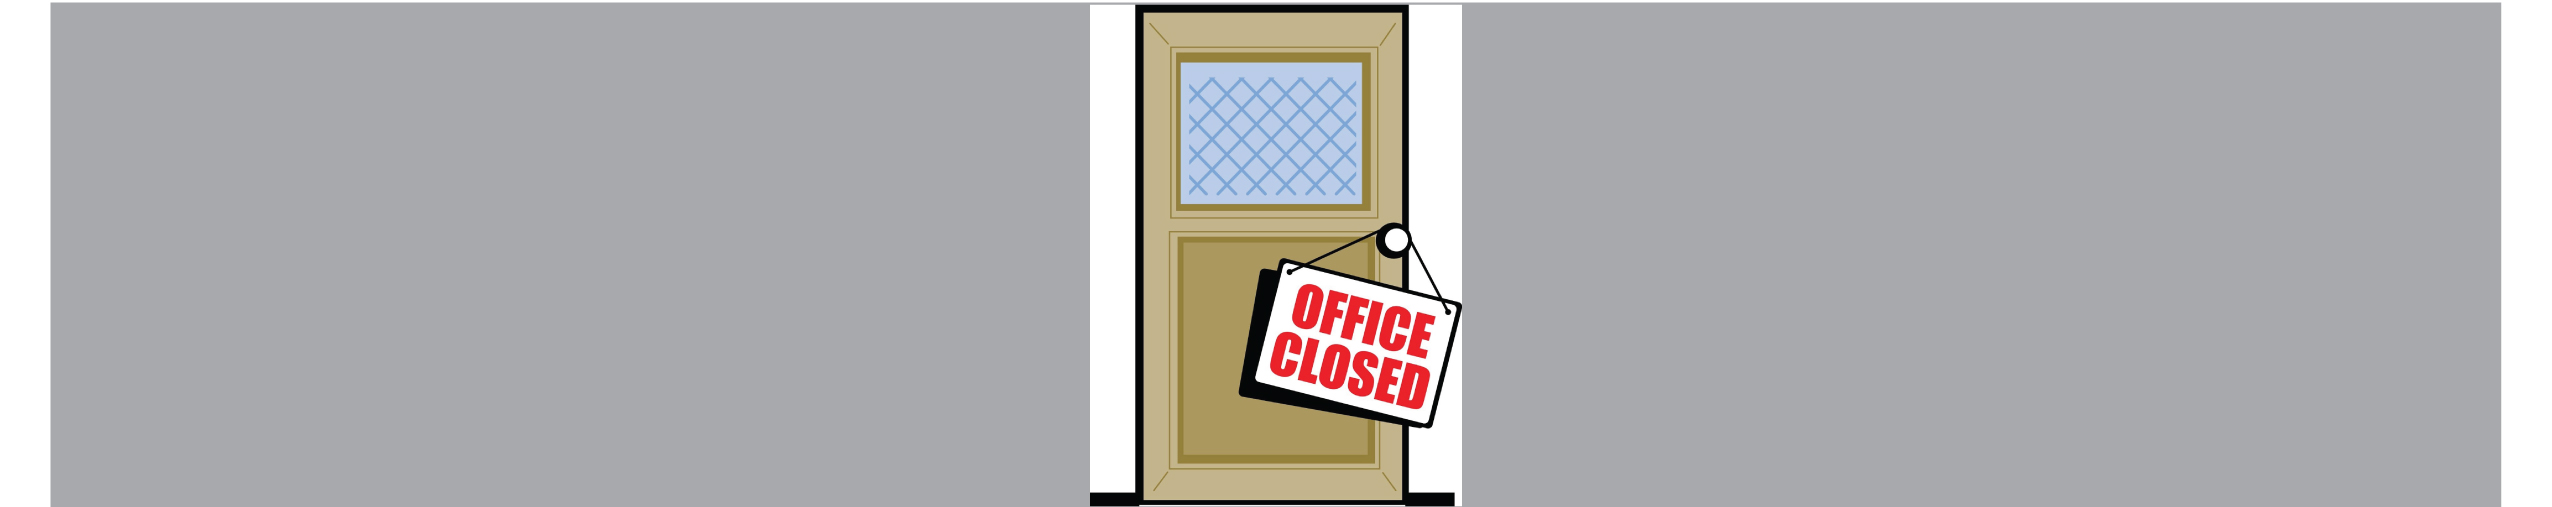 Office closure as of April 6, 2021